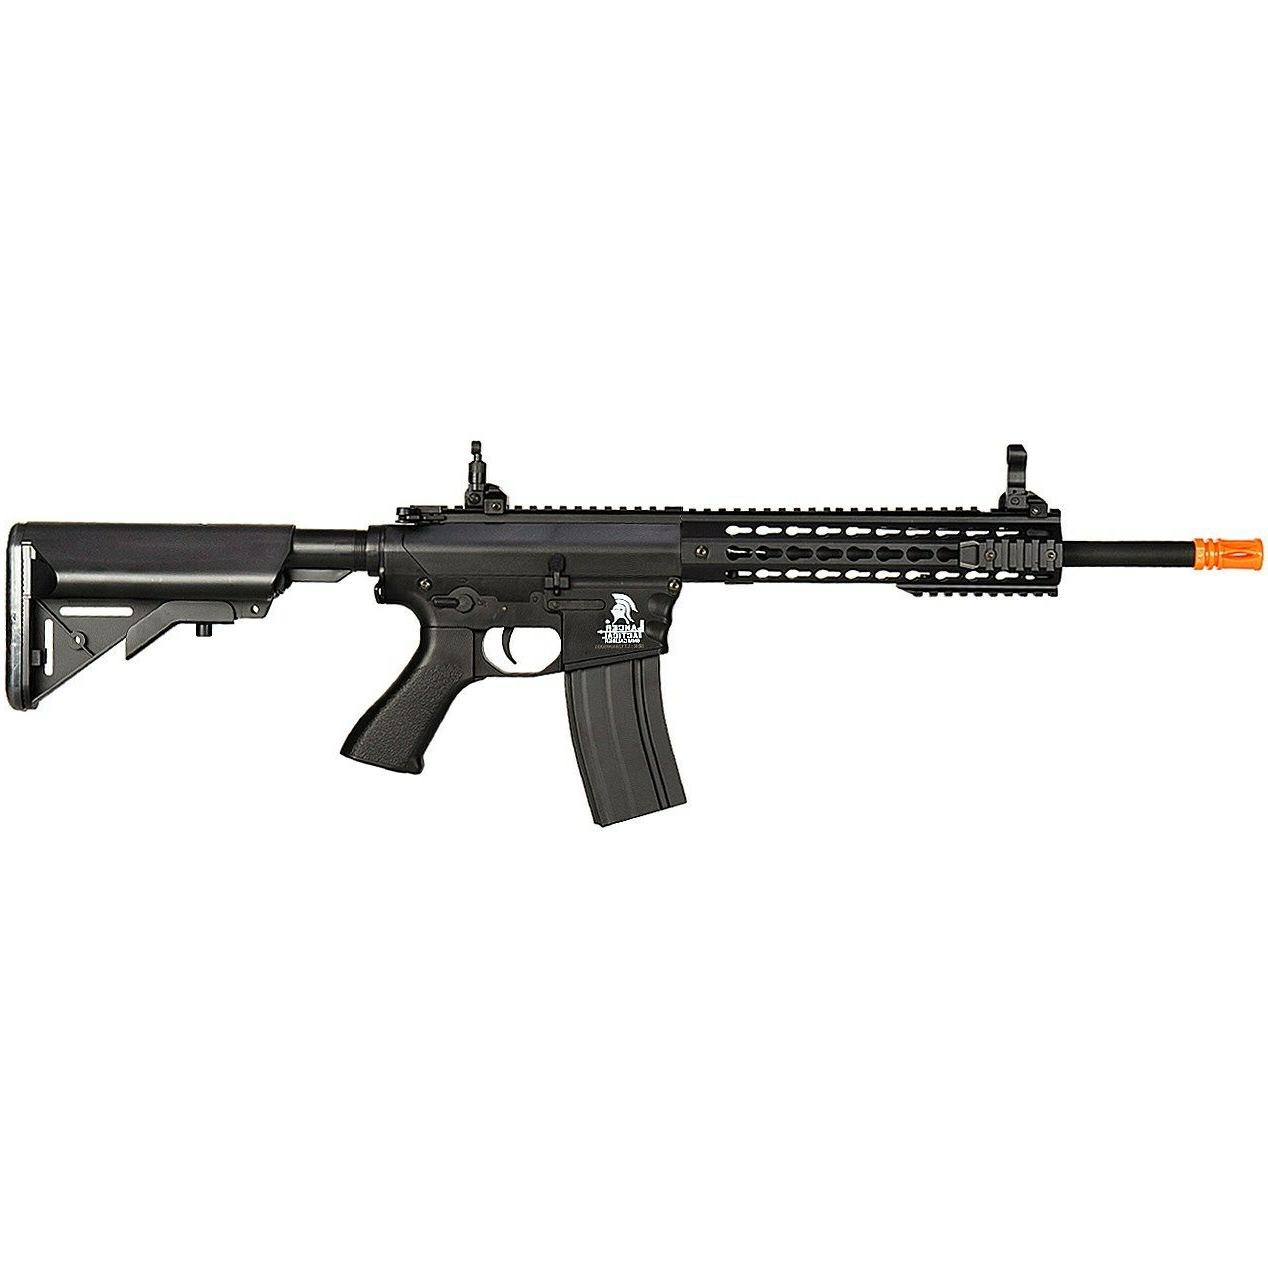 LANCER TACTICAL M4 KEYMOD AEG AUTOMATIC ELECTRIC AIRSOFT RIF